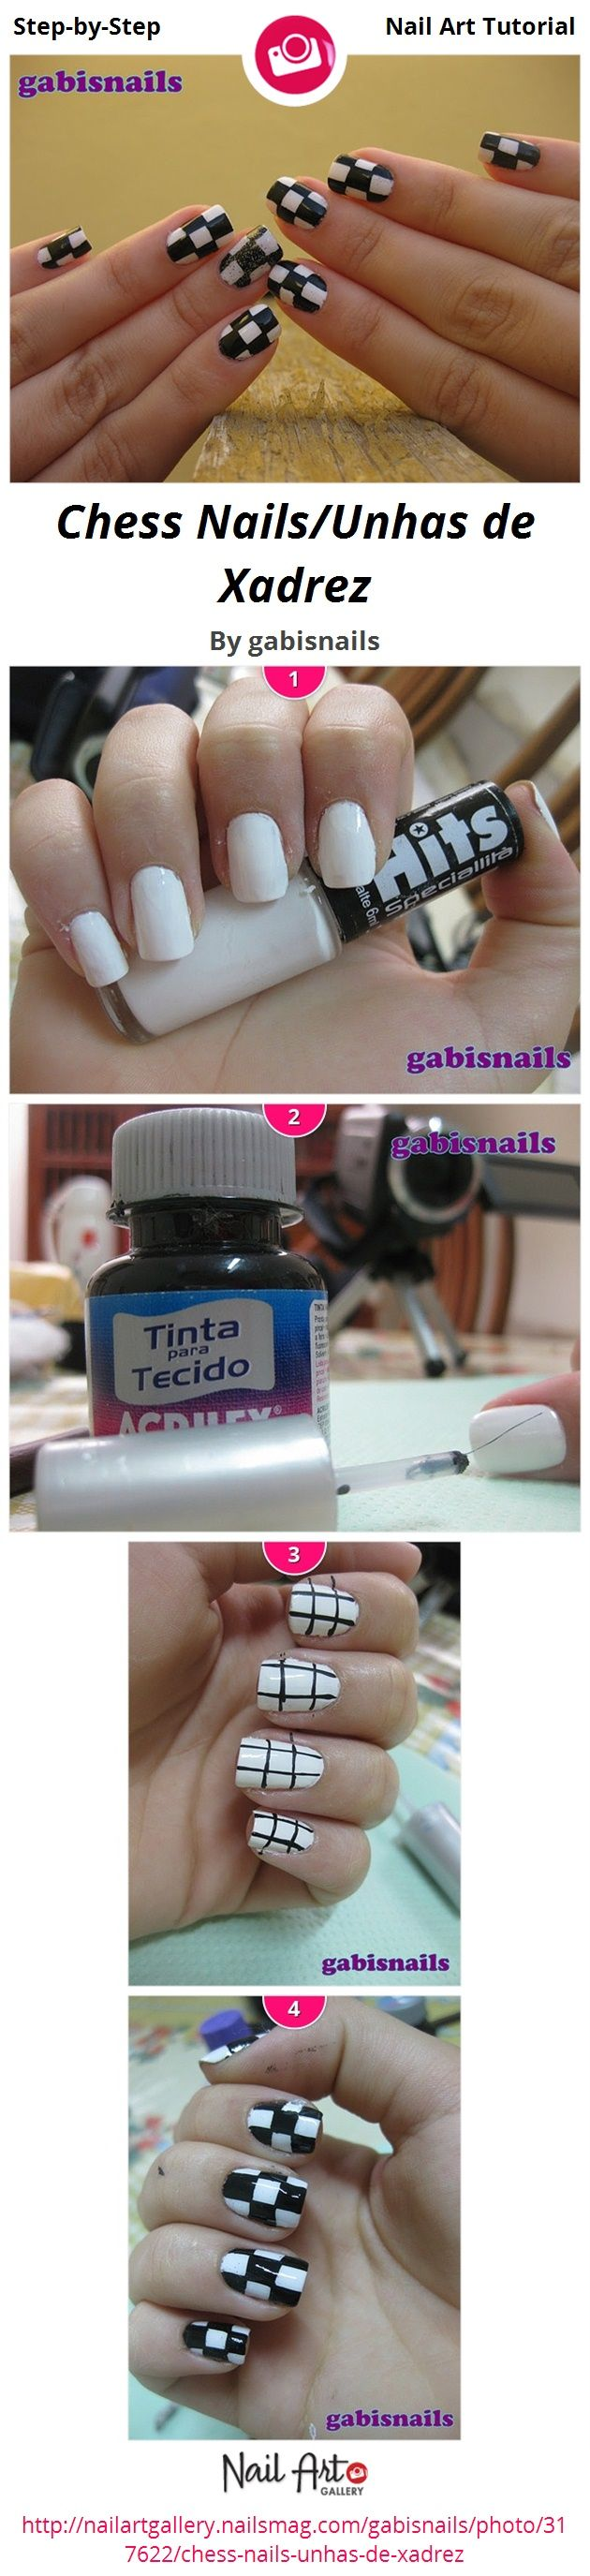 Chess Nails/Unhas de Xadrez by gabisnails - Nail Art Gallery Step-by ...